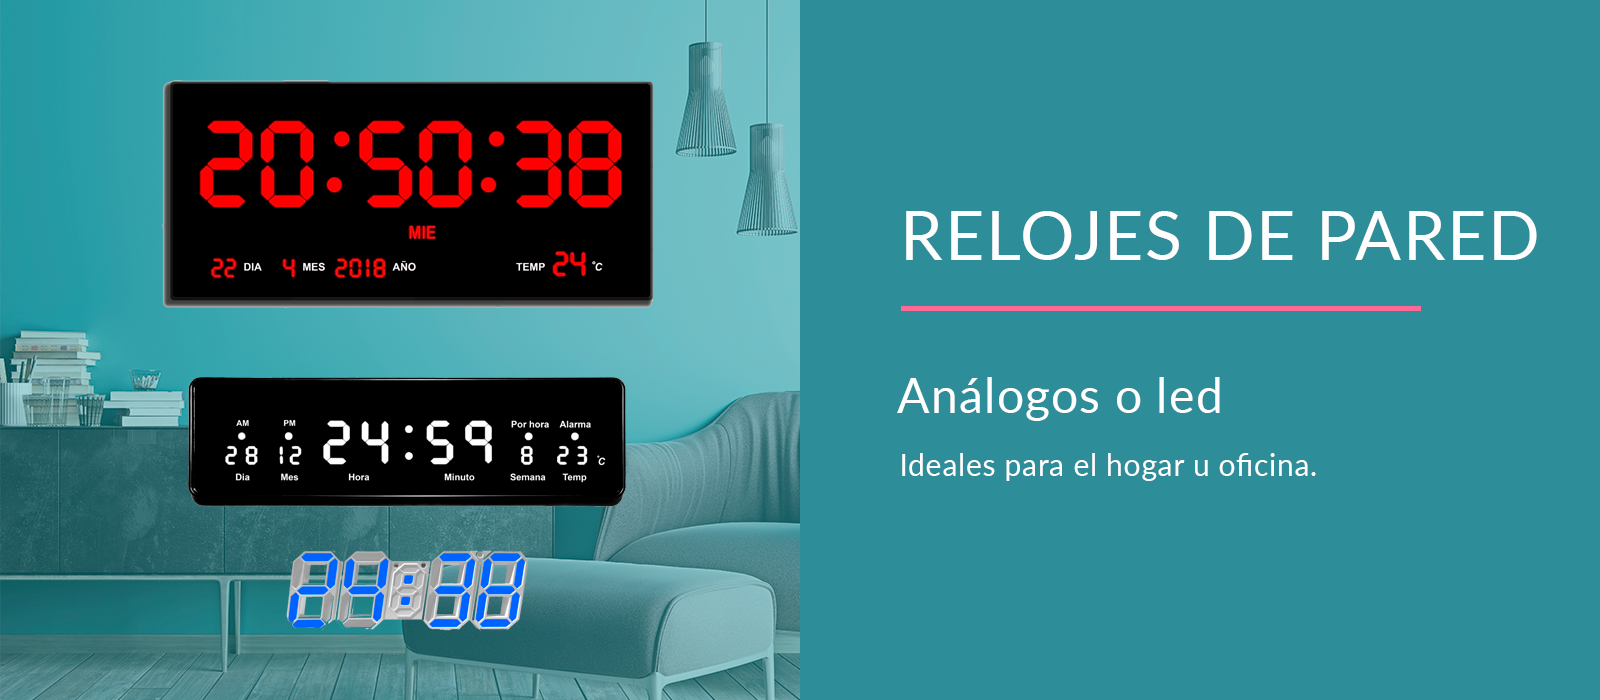 Relojes Pared